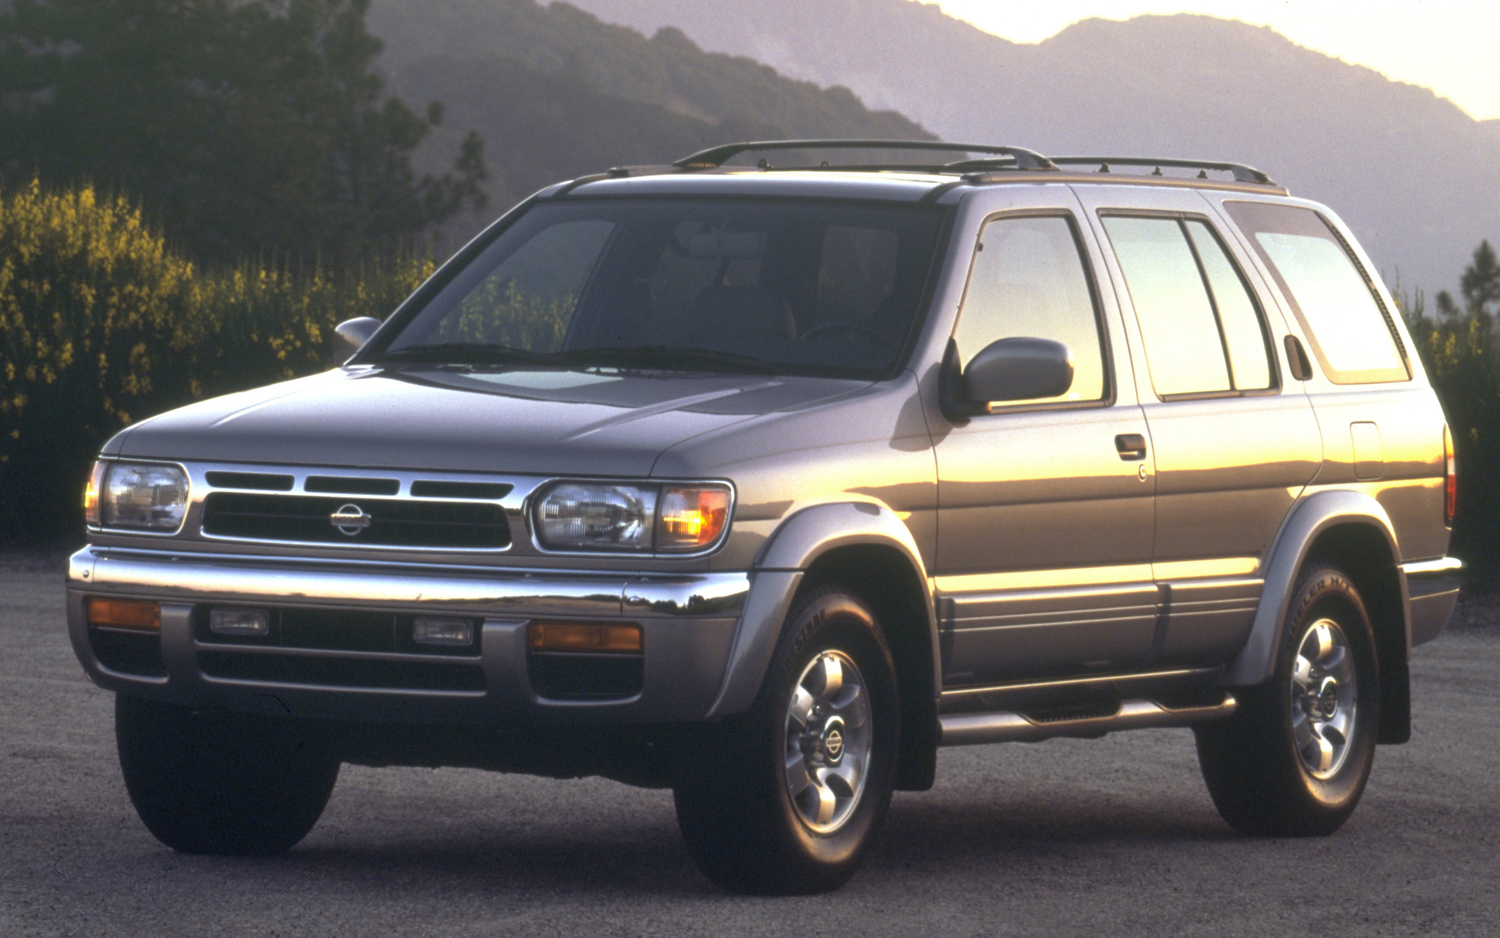 1999 Nissan Pathfinder Information And Photos Momentcar